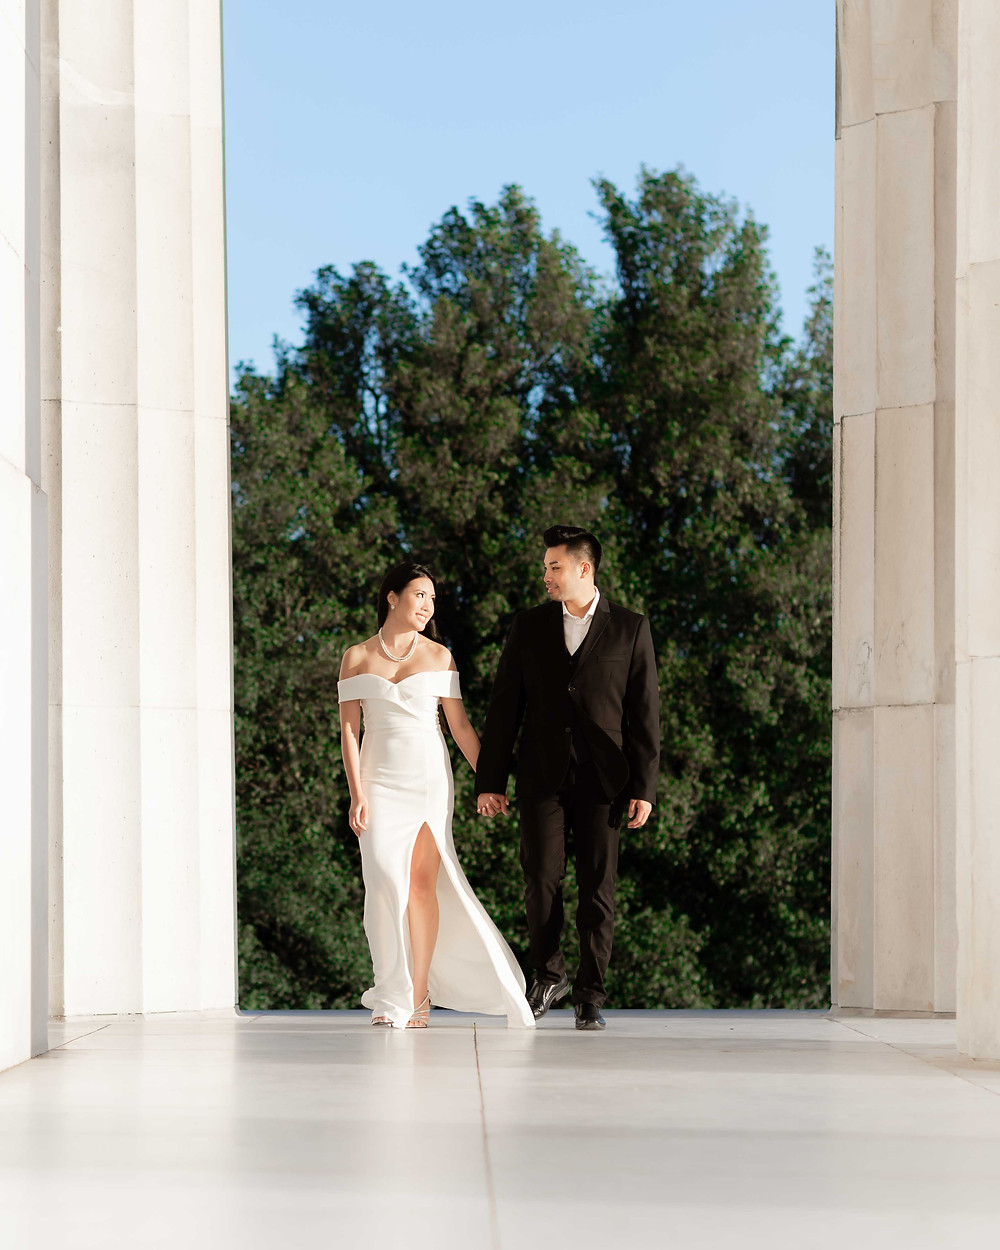 Engagement photography at the Lincoln Memorial.